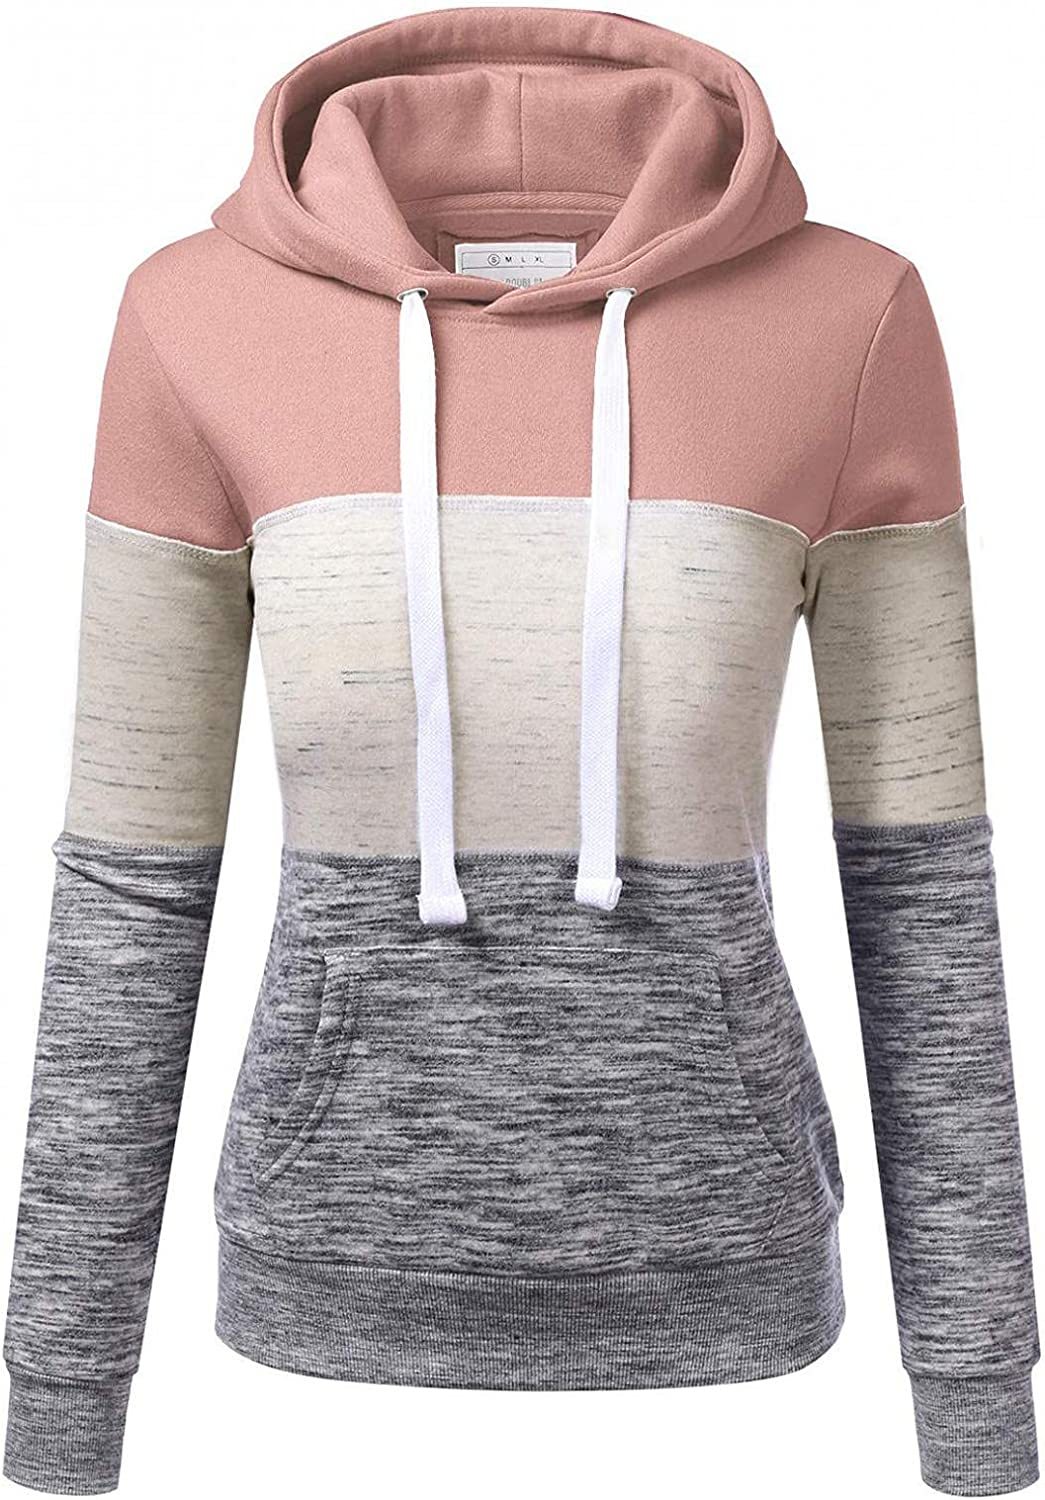 ORT Hoodies for Women, Graphic Womens Hoodies Pullover Cowl Neck Long Sleeve Hooded Sweatshirts Casual Striped Sweaters Tops